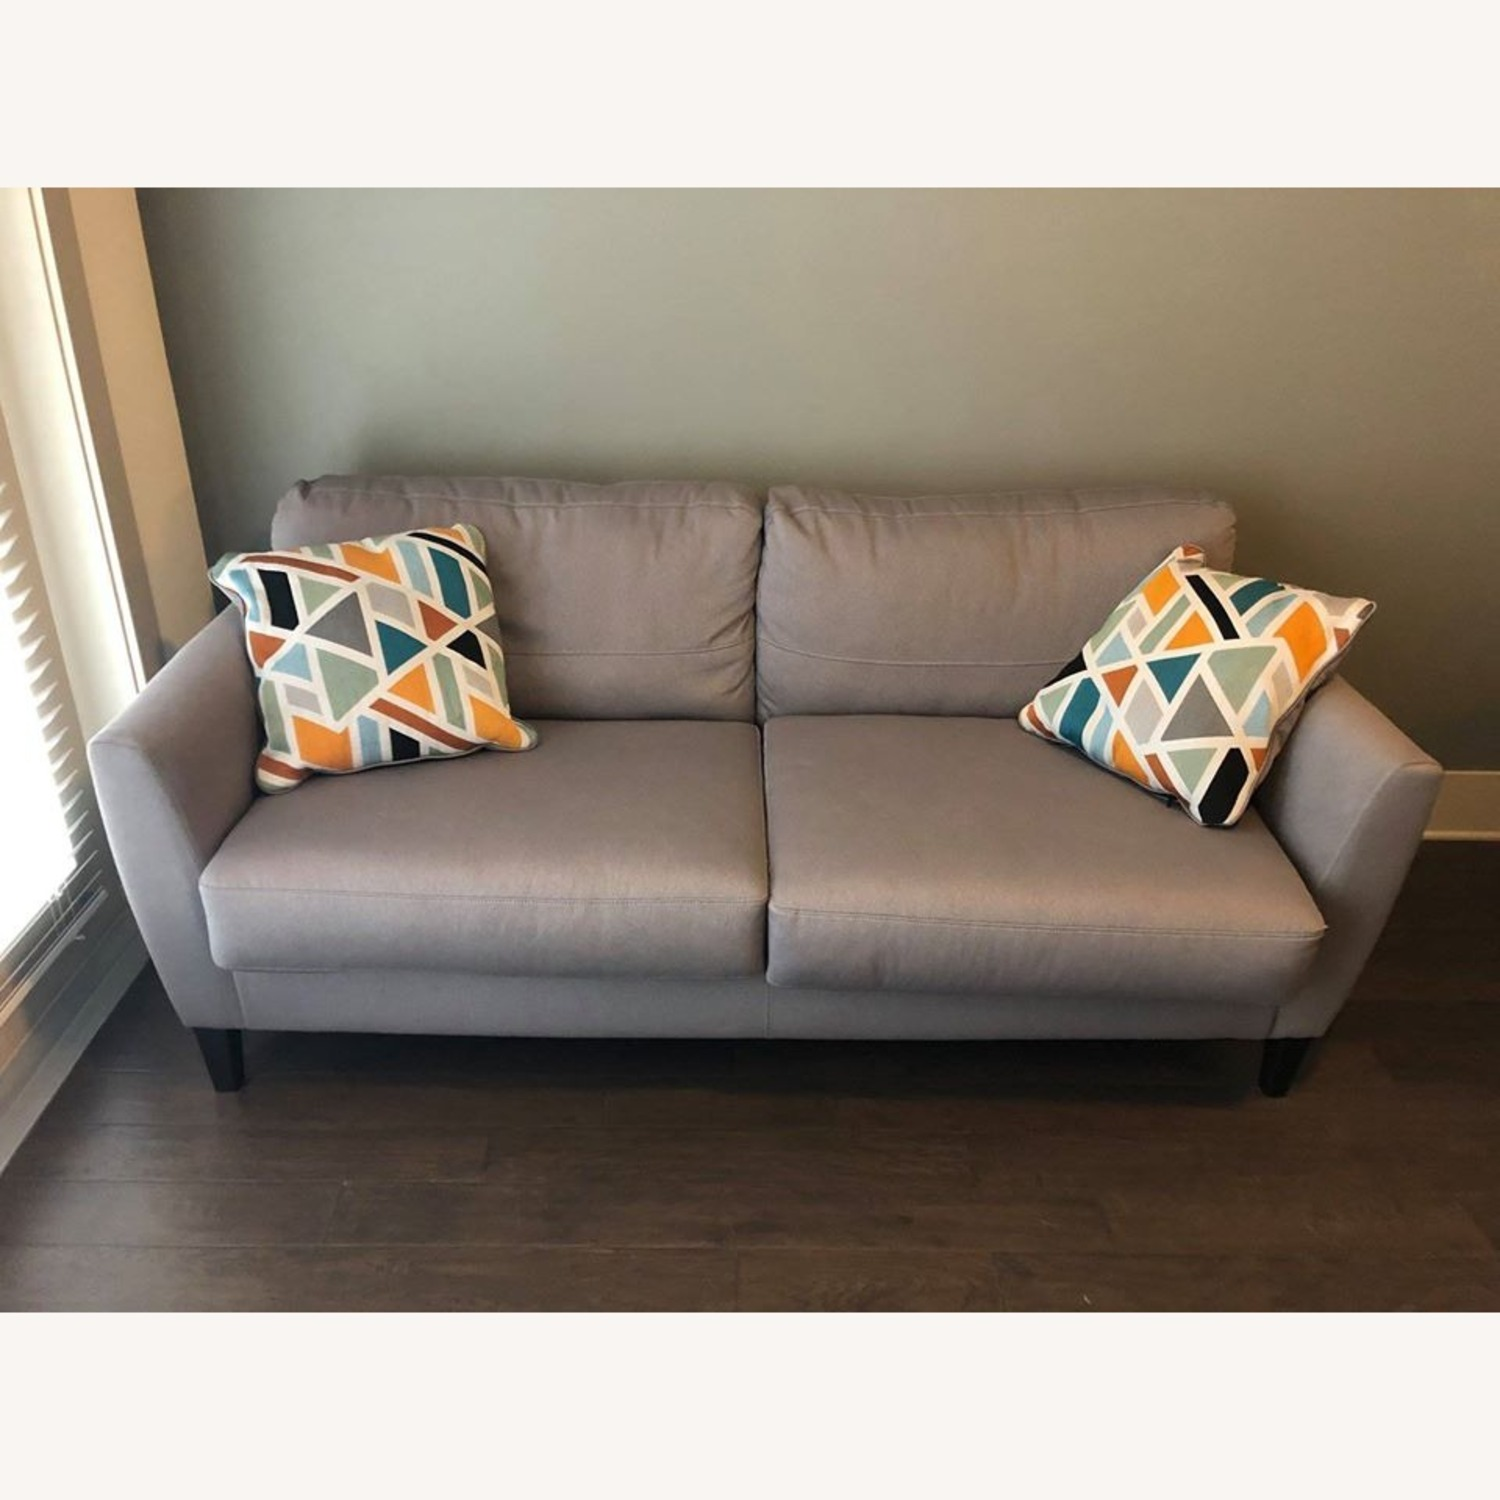 Ashley Furniture Comfortable Grey Couch - image-3